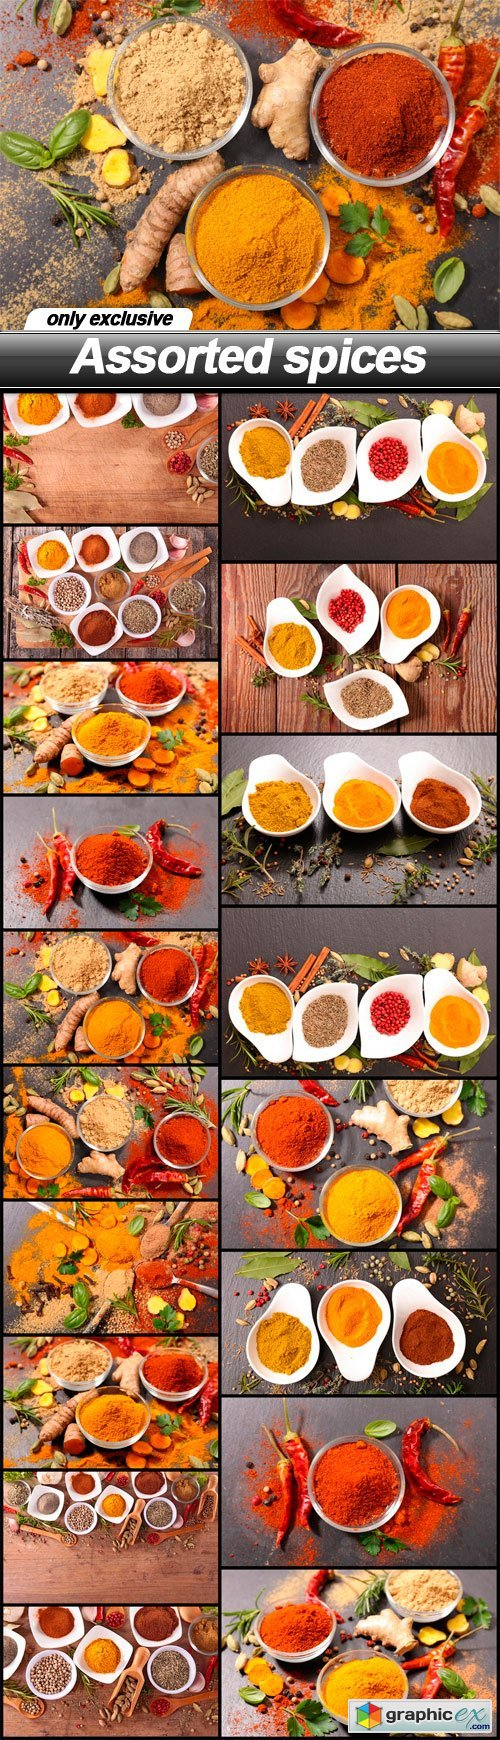 Assorted spices - 18 UHQ JPEG